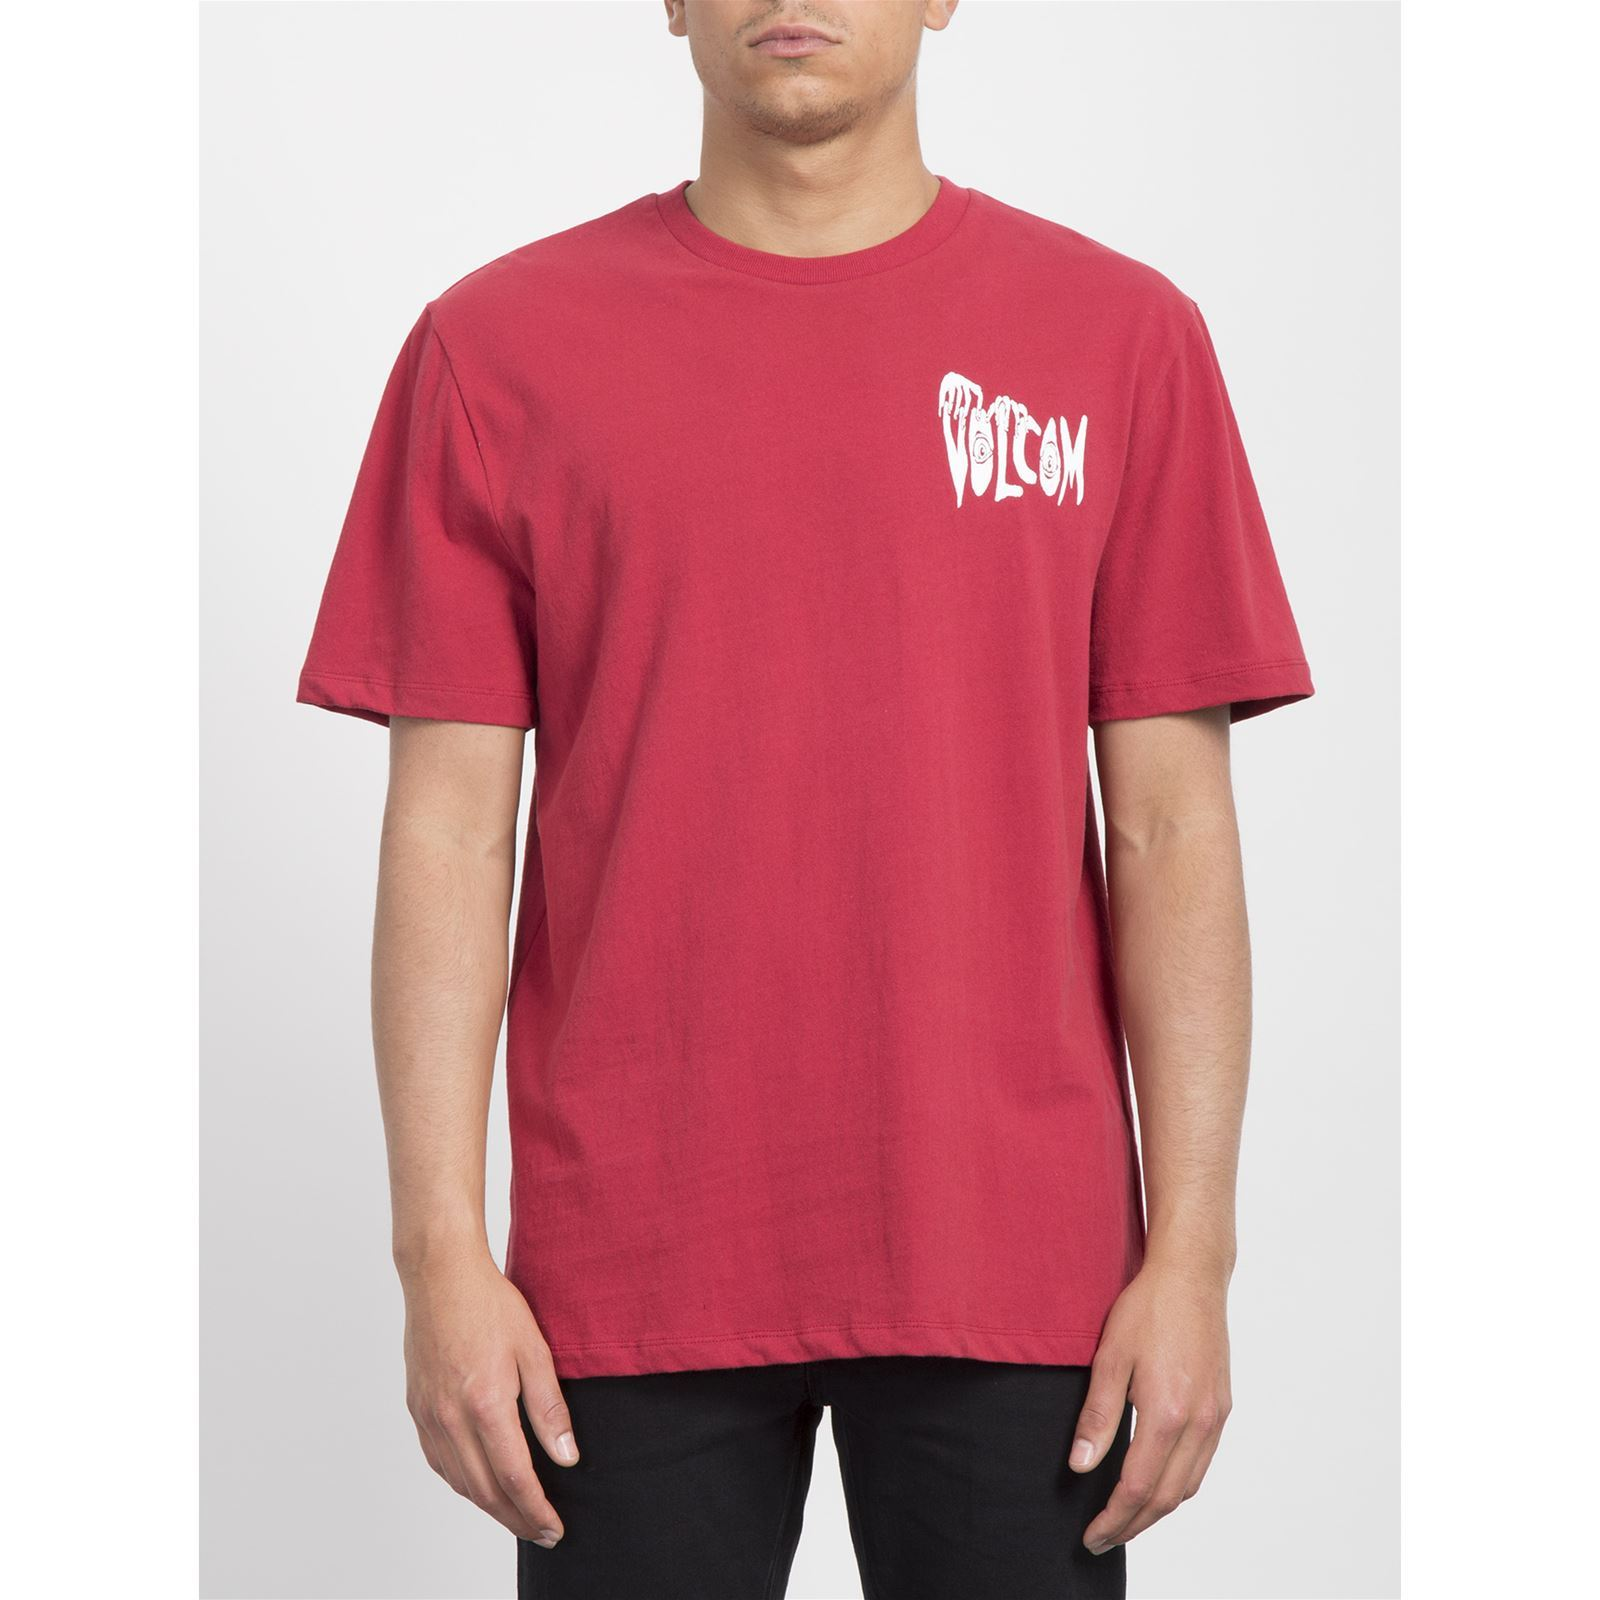 shirt BxyT Homme Panic Volcom V Courtes Manches Rouge WIEH9eDYb2